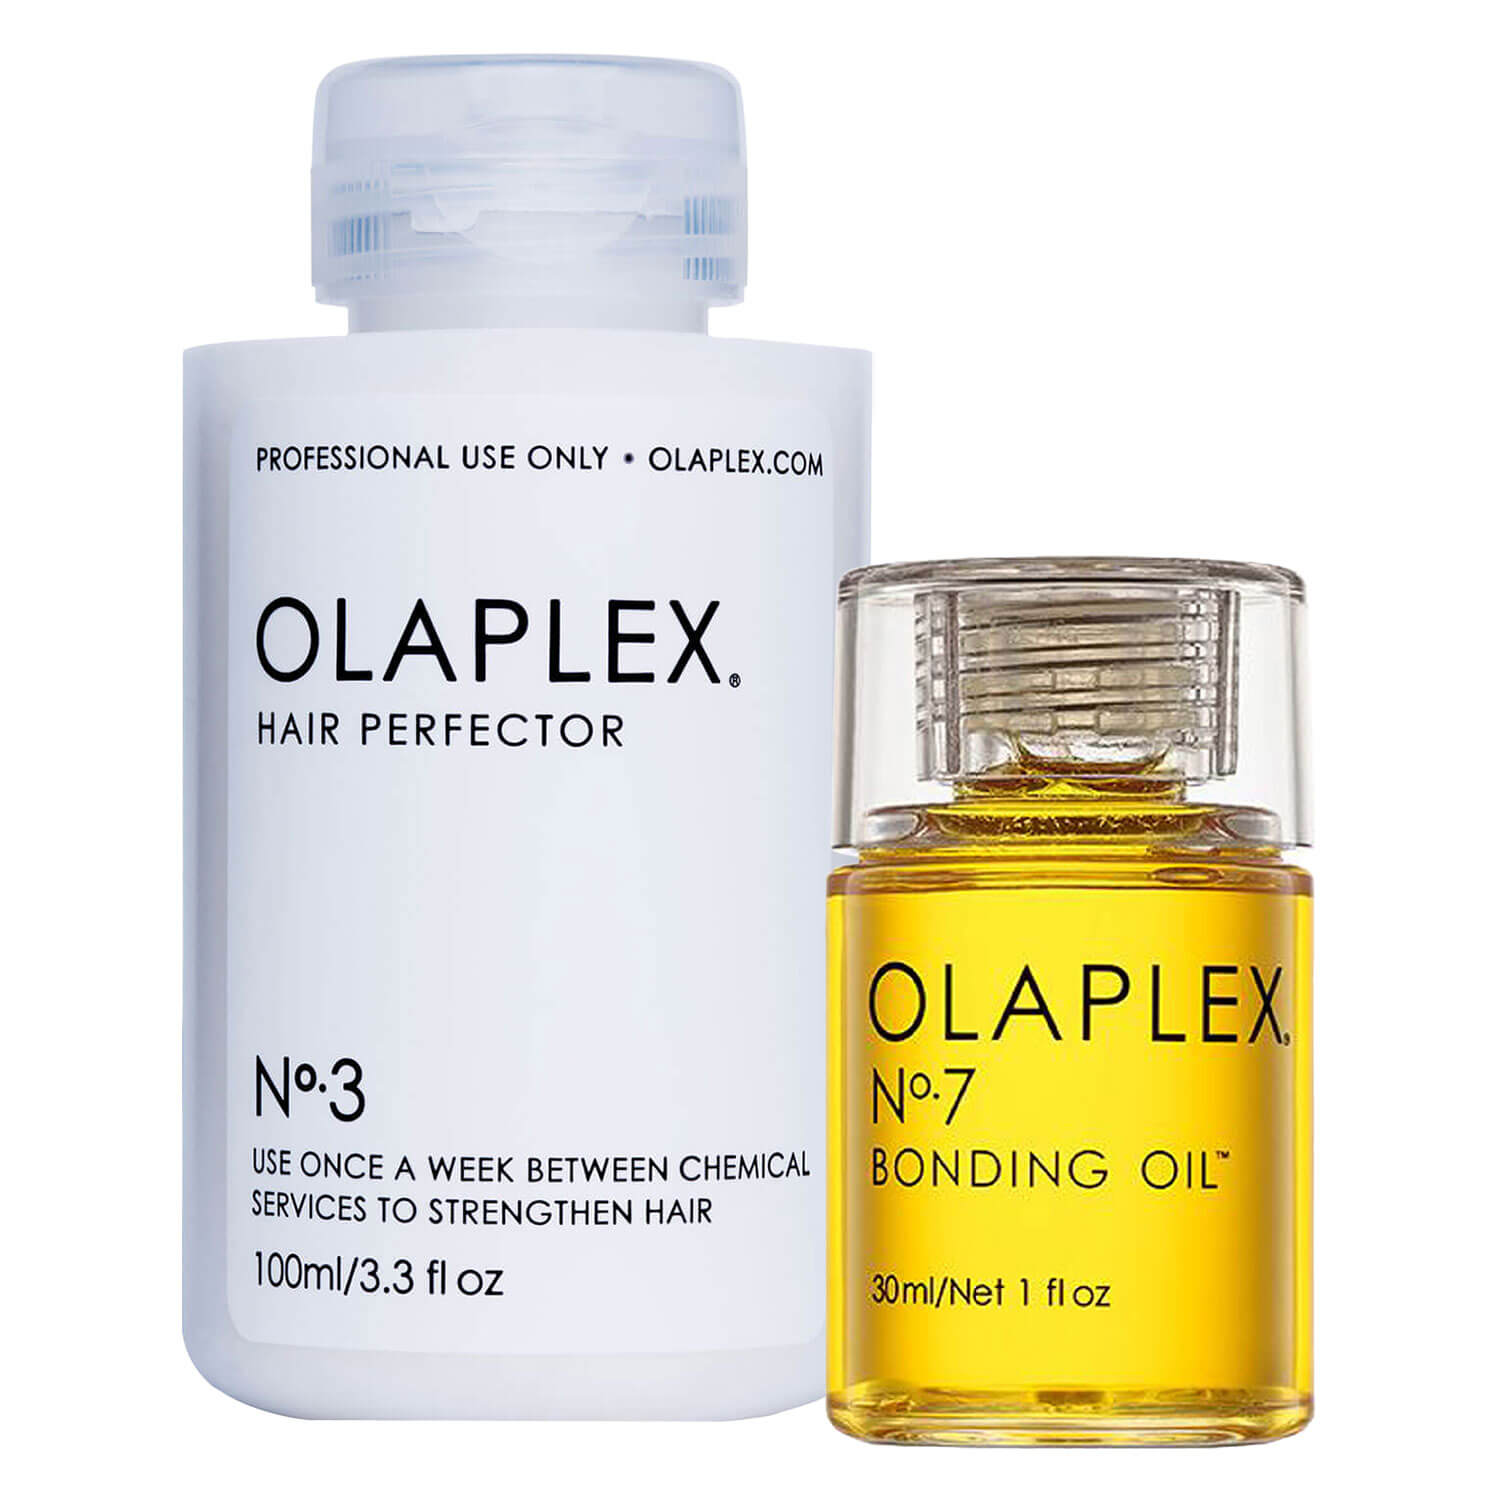 Olaplex - Bonding Oil No. 7 + Olaplex - Hair Perfector No. 3 Special